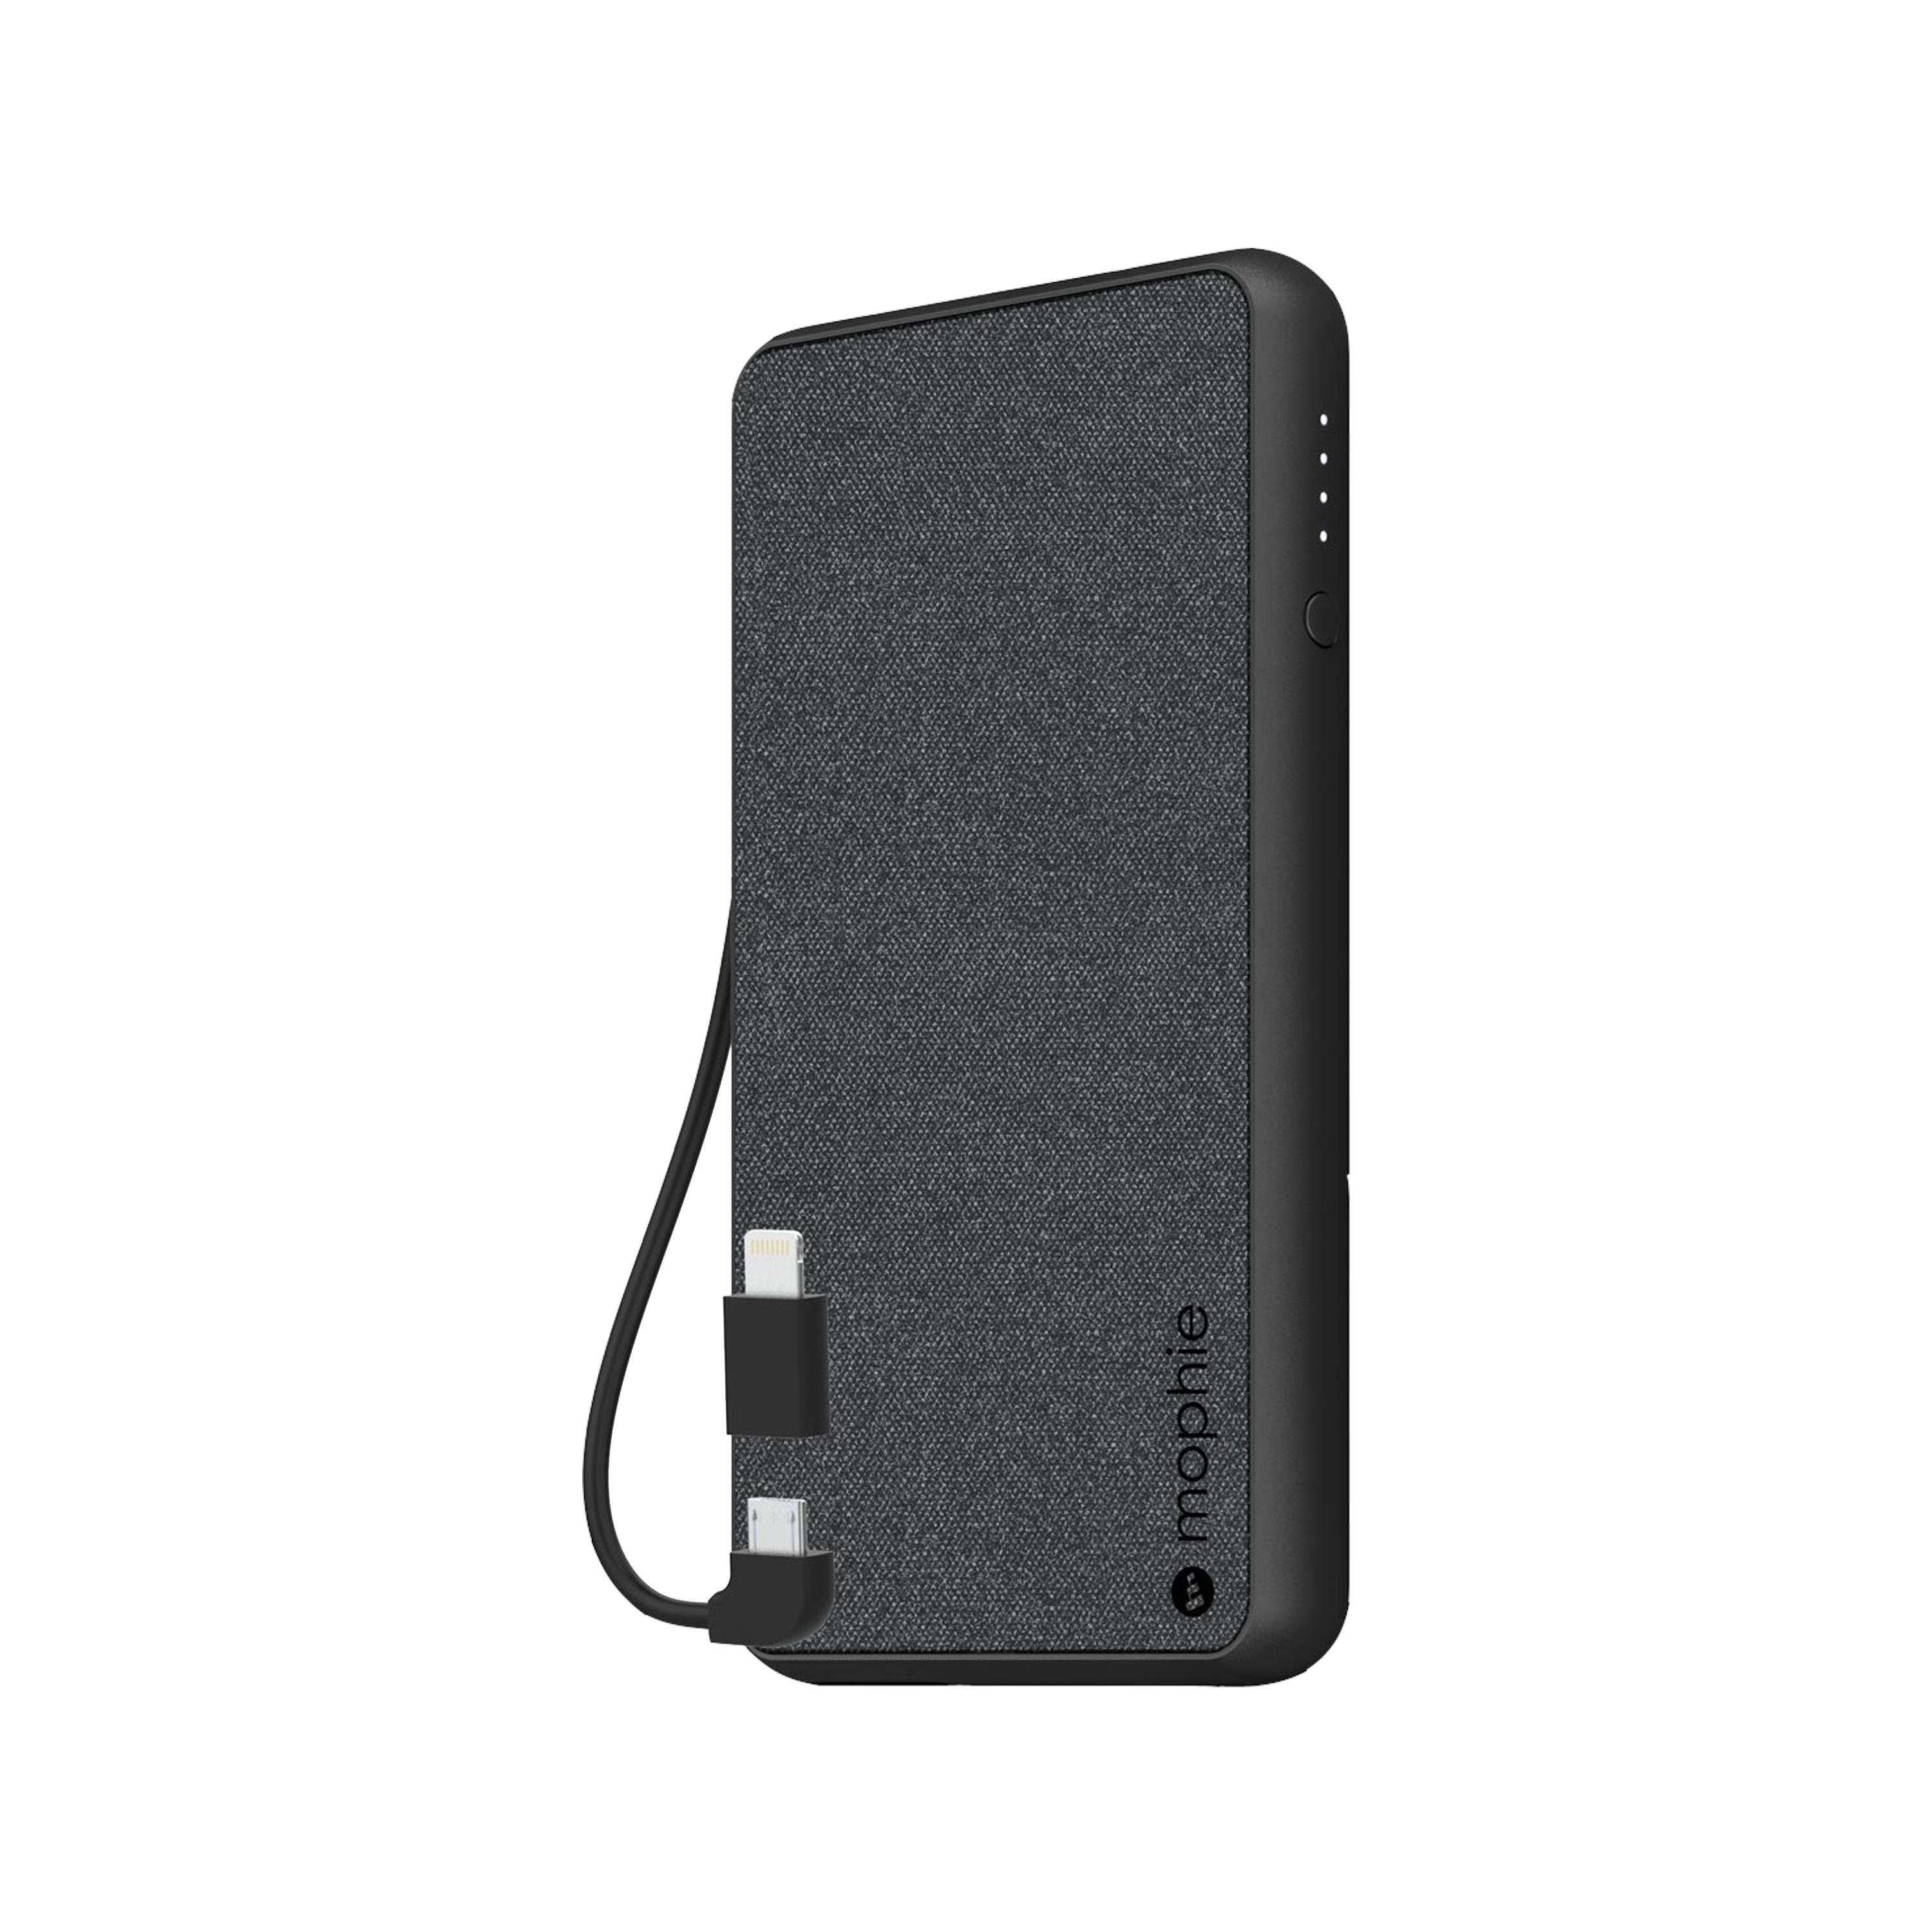 Powerstation Plus Mini - Black Fabric (4,060mAh)